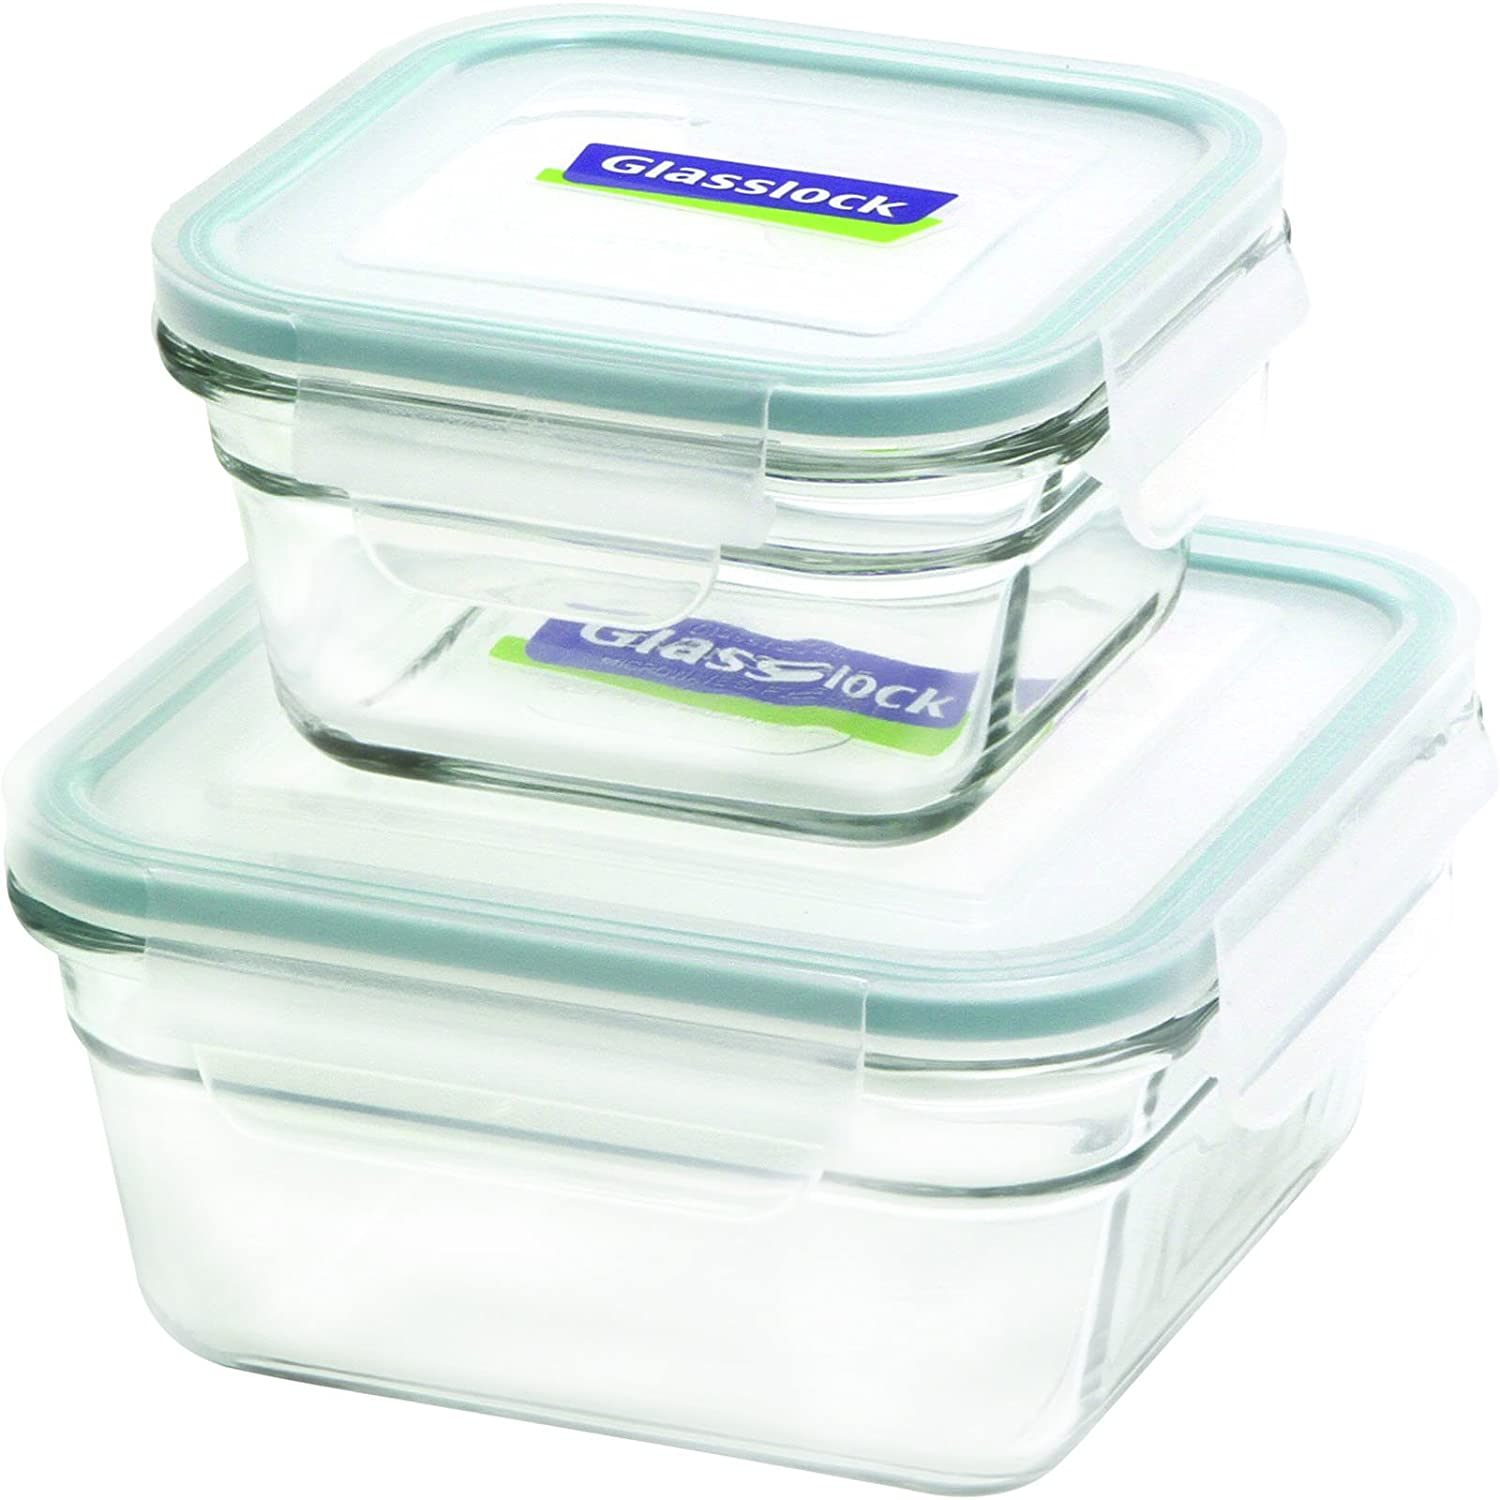 Glasslock 11342 4-Piece Square Oven Safe Container Set